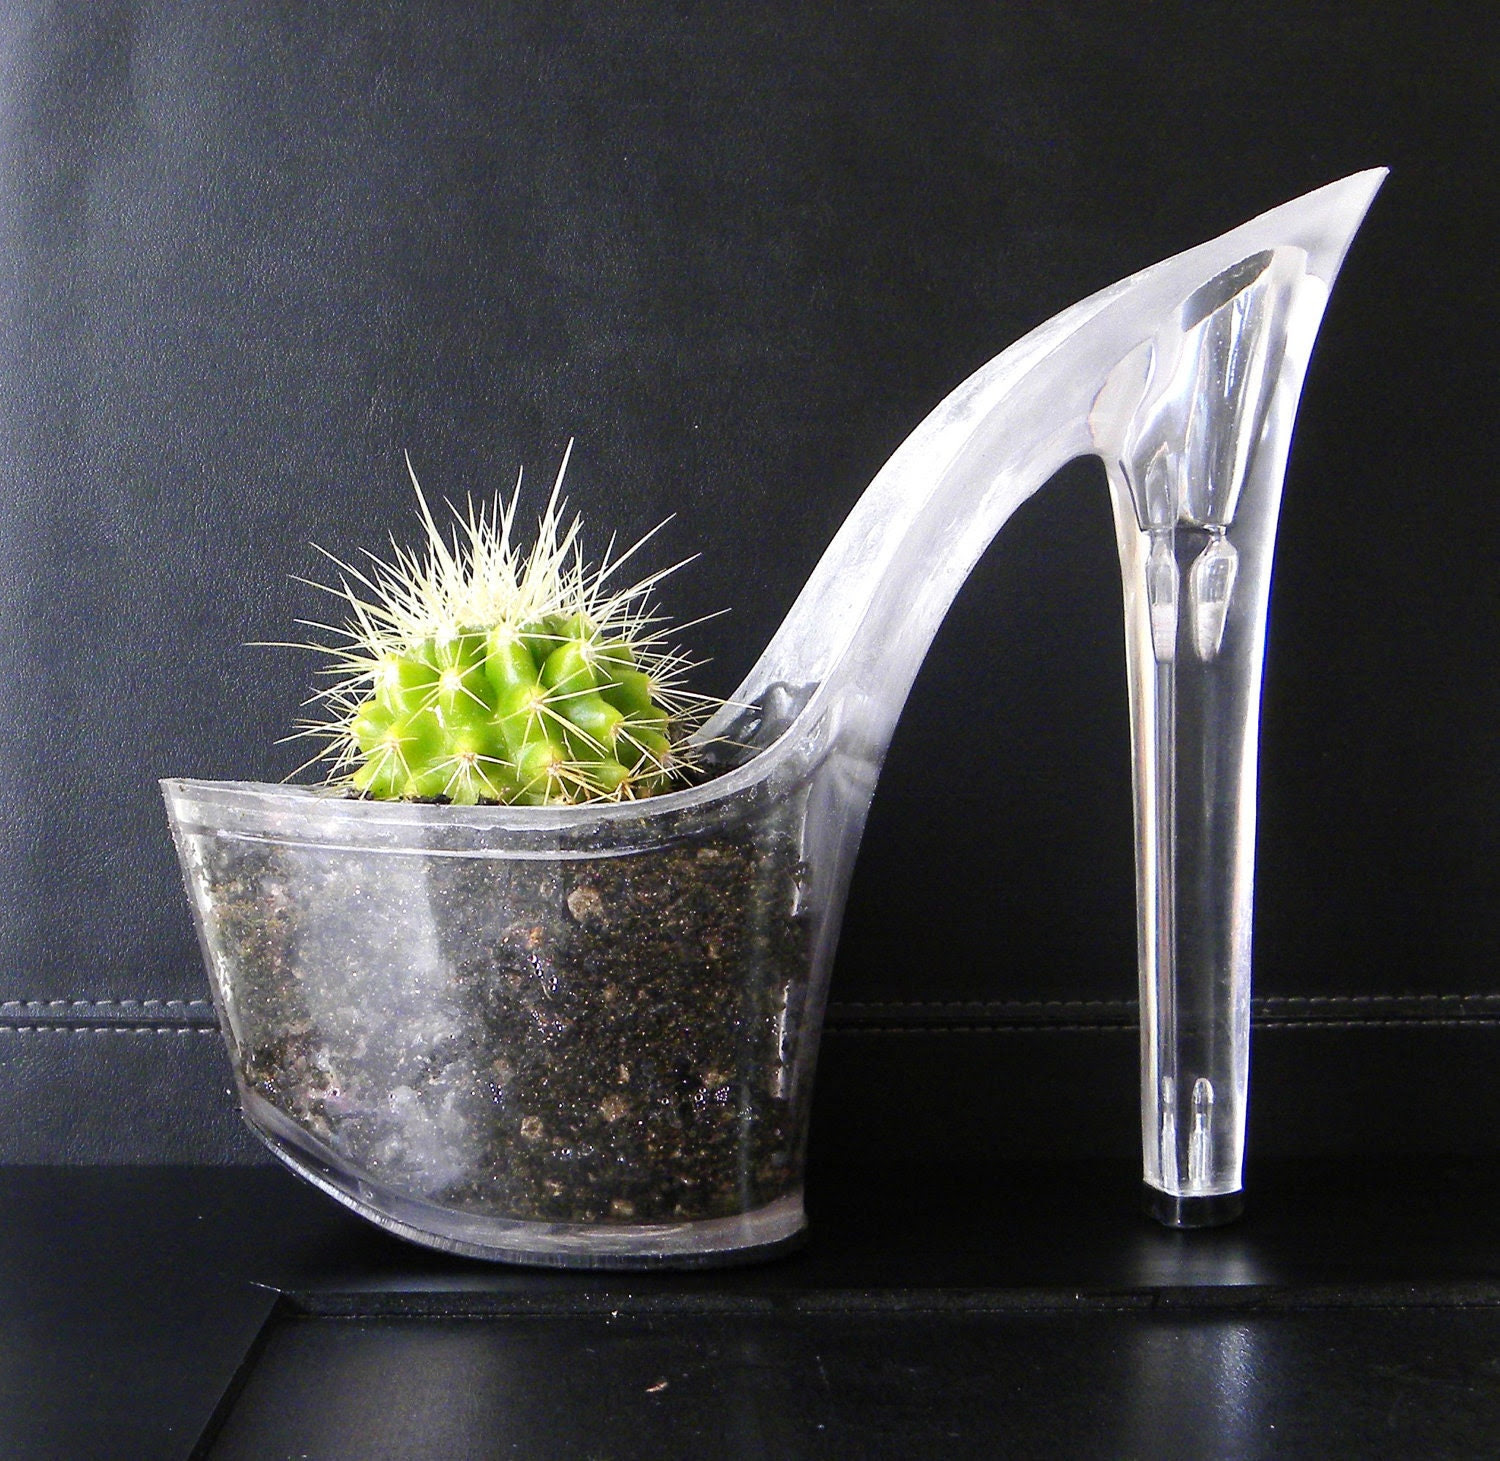 Trick. stiletto cactus planter reclaimed lucite platform heel. feminist art. centerpiece. eco friendly indoor garden